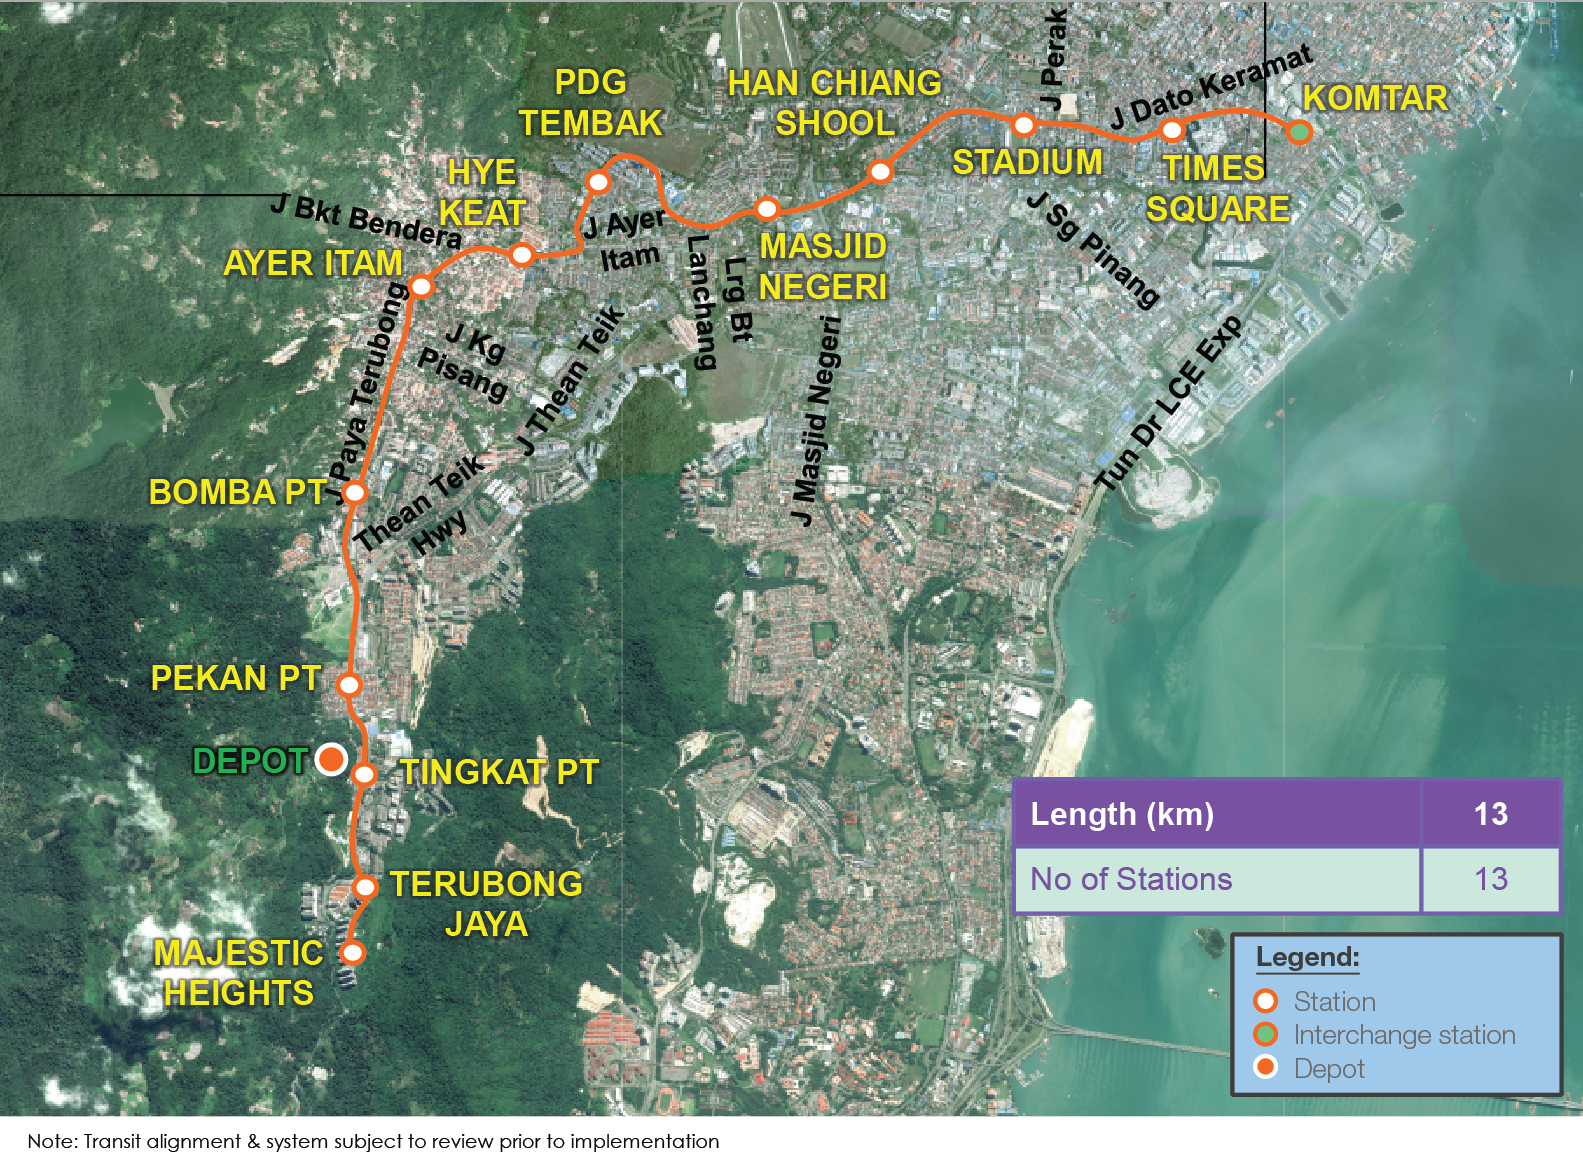 penang-monorail-air-itam-line